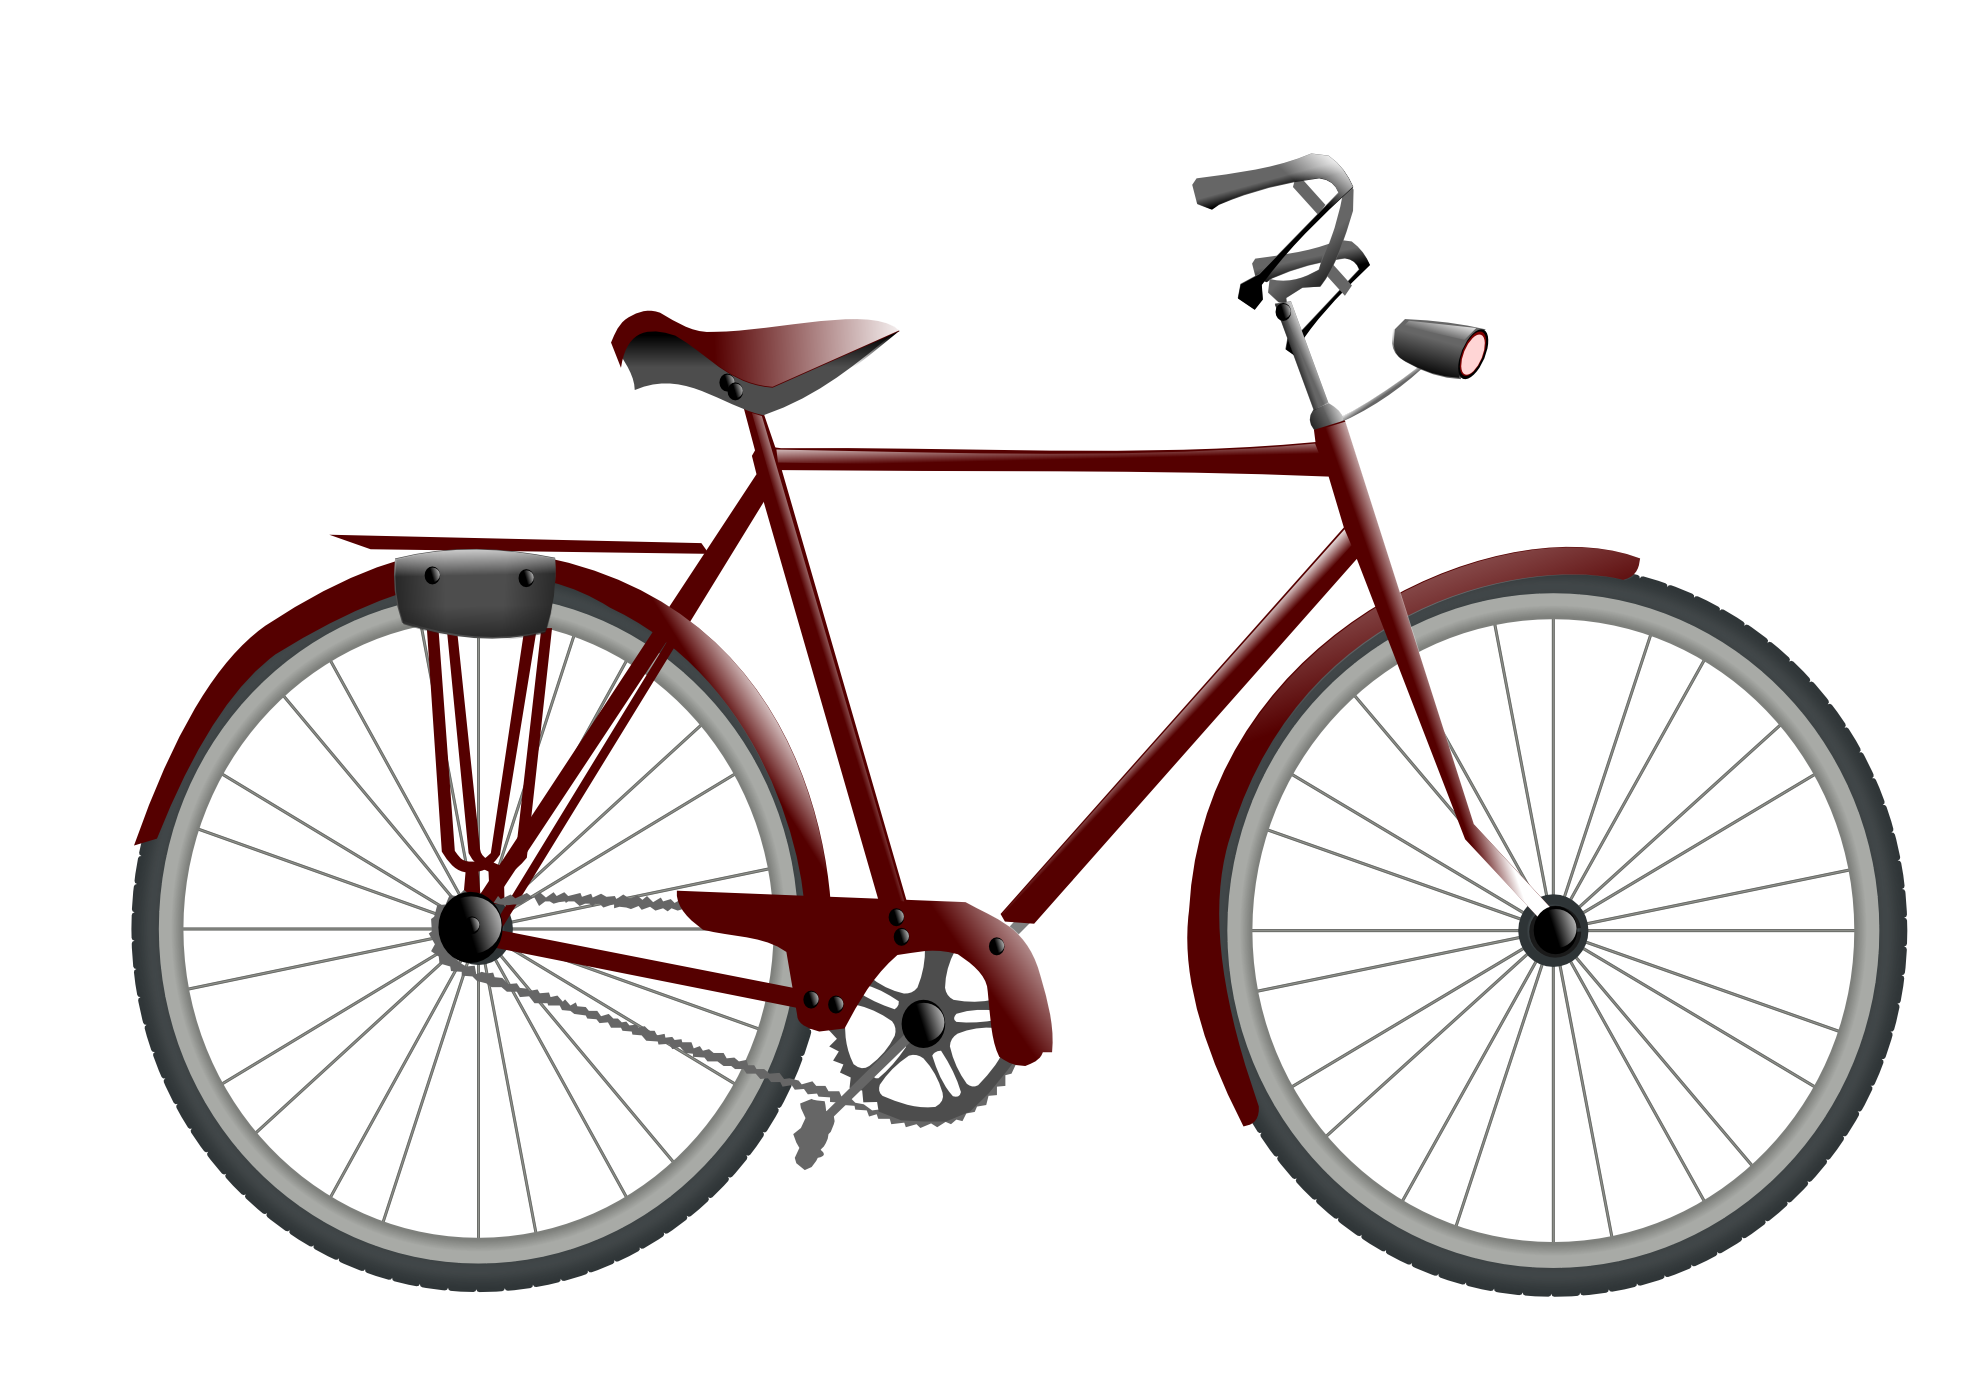 Bicycle Png - Bicycle PNG Photos